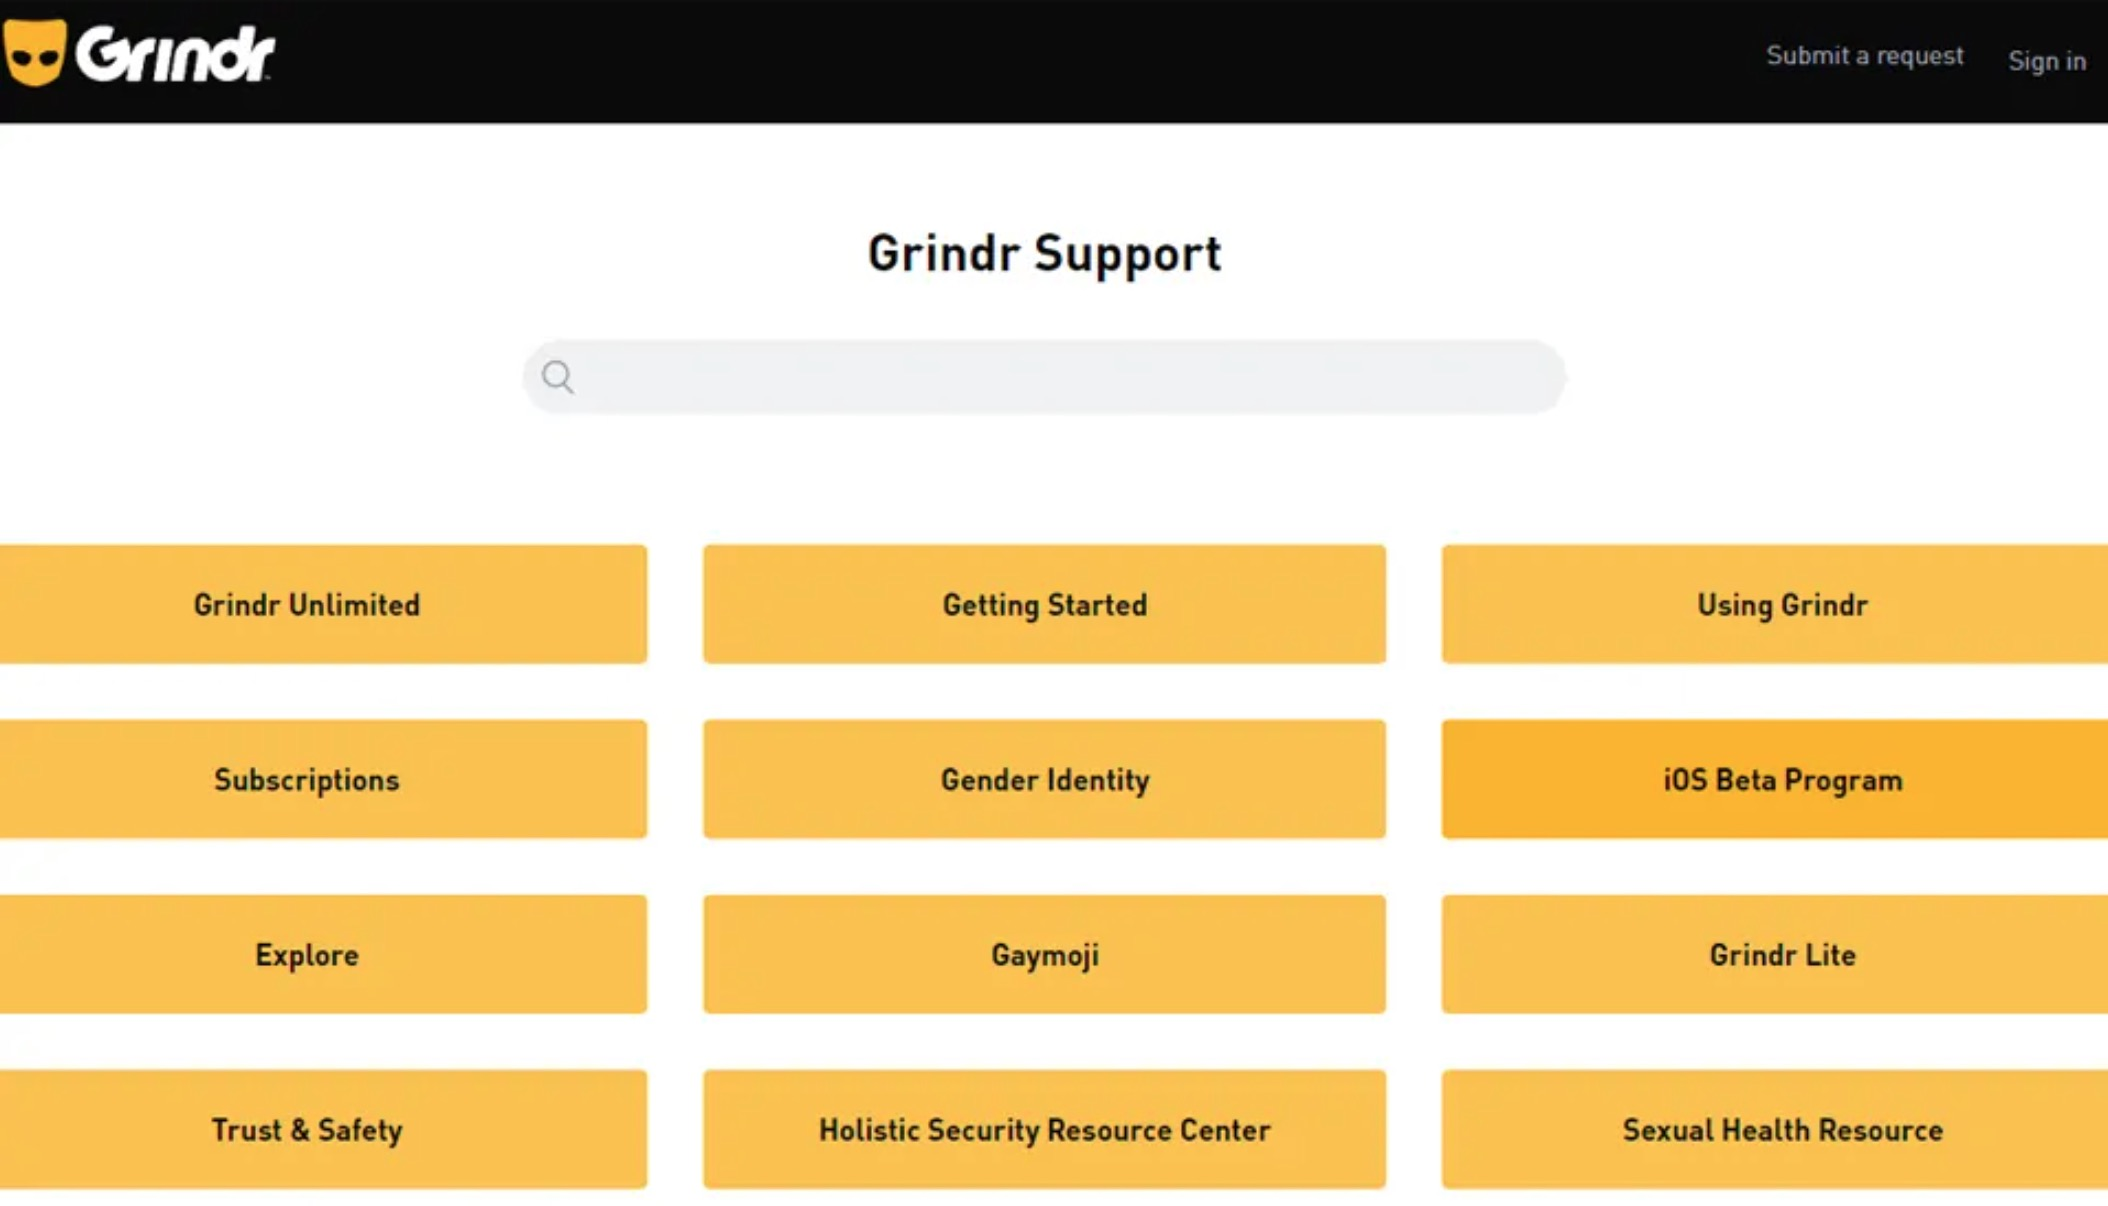 Grindr support